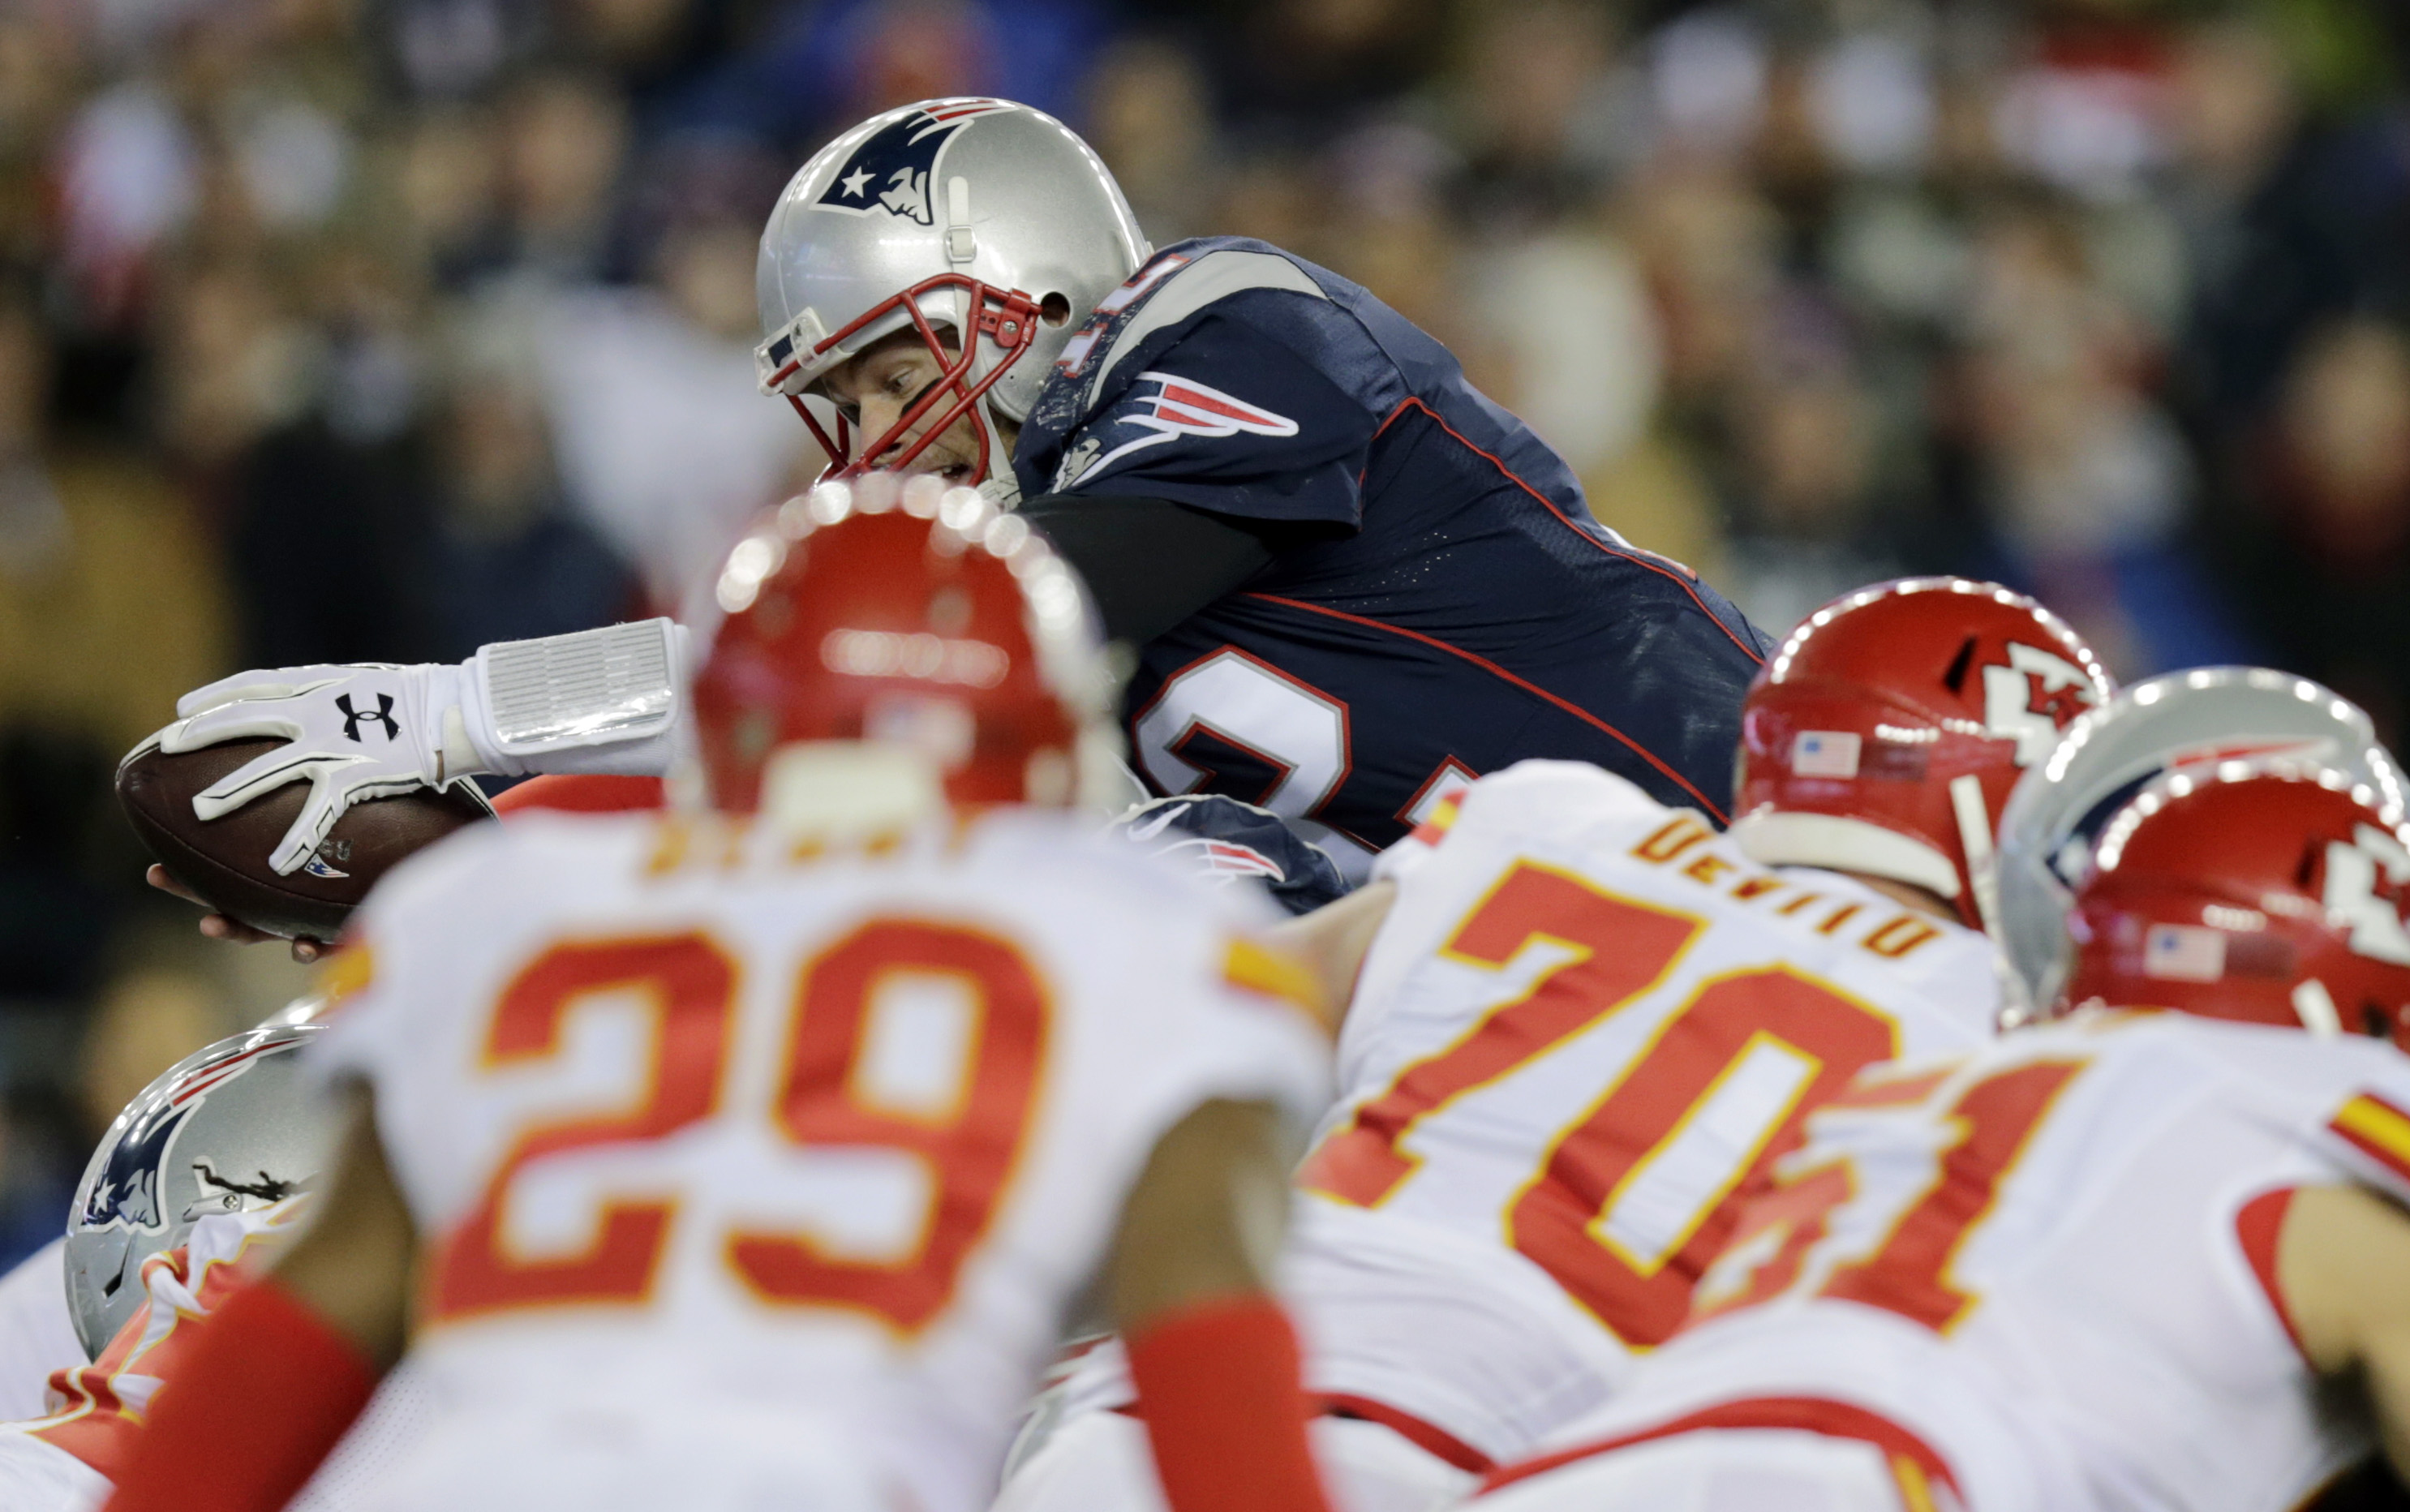 New England Patriots quarterback Tom Brady (12) goes over the top for a touchdown against the Kansas City Chiefs in the first half of an NFL divisional playoff football game, Saturday, Jan. 16, 2016, in Foxborough, Mass. (AP Photo/Charles Krupa)